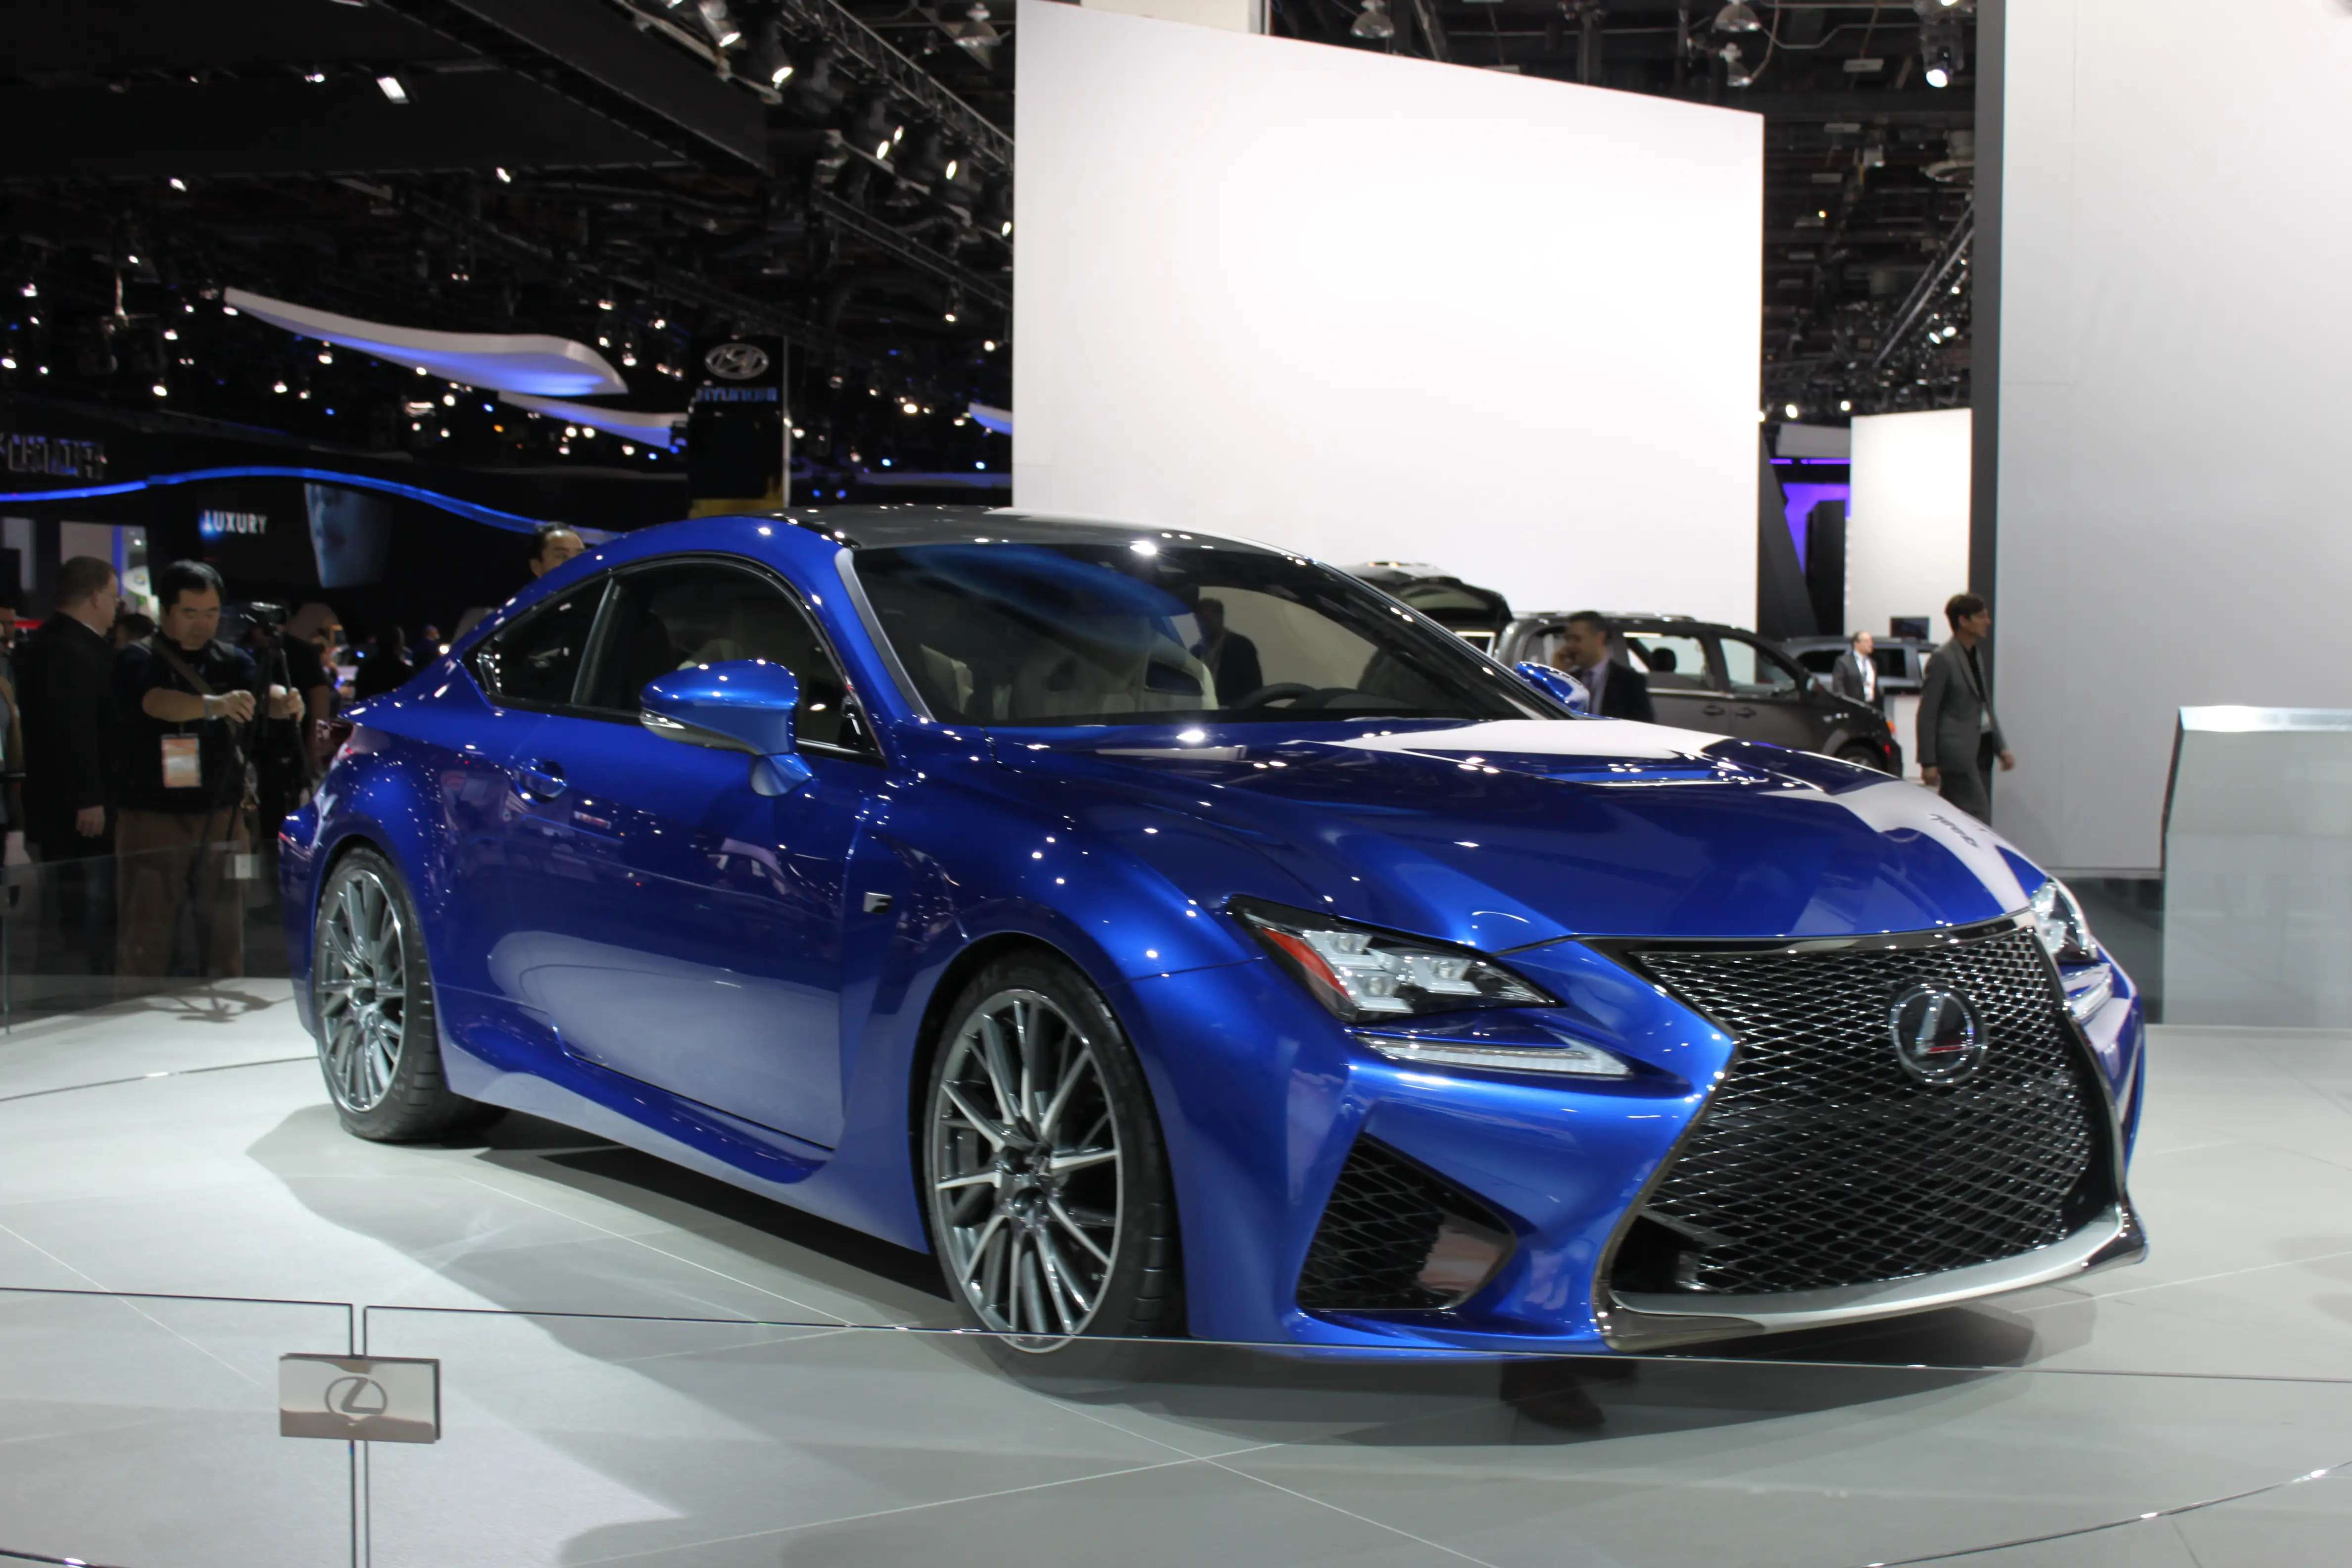 Lexus pulled the covers off the 2015 RC F performance coupe, a sleek rear-wheel driver with a V8 engine that generates over 450 horsepower. Our favorite bit is the huge, shiny spindle grille.